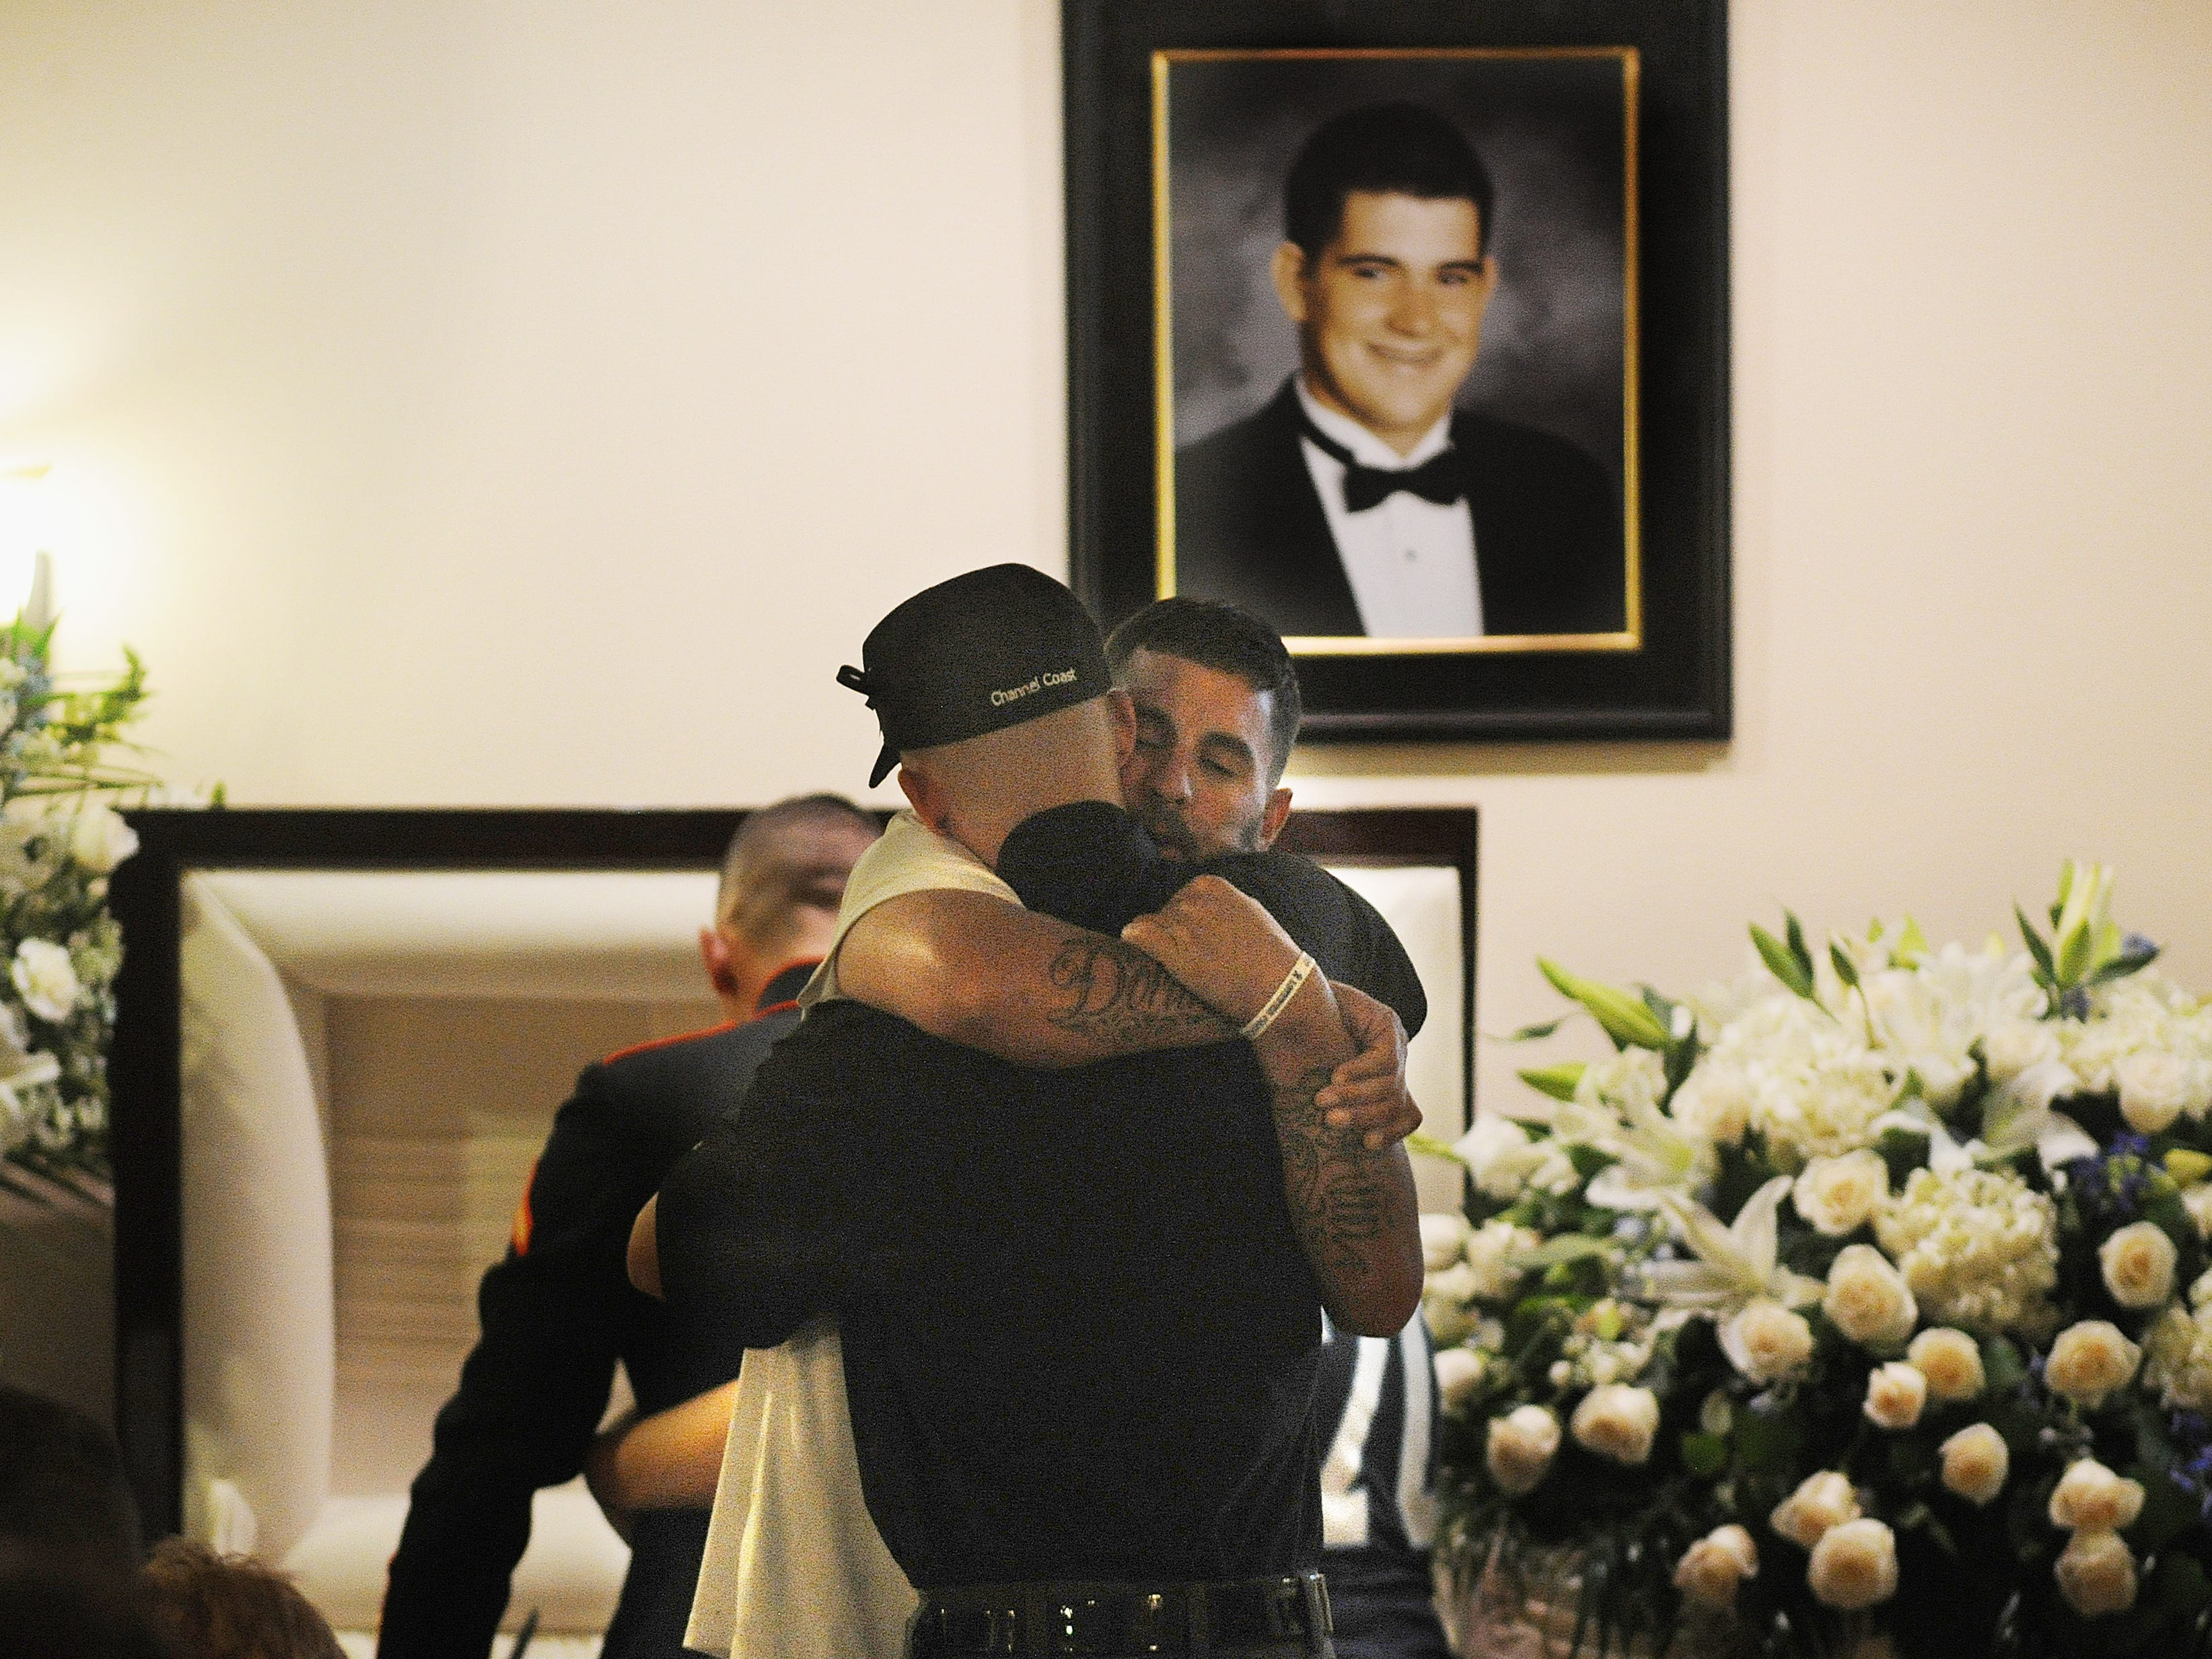 Thousand Oaks shooting victim Cody Gifford-Coffman remembered for heroism at Borderline